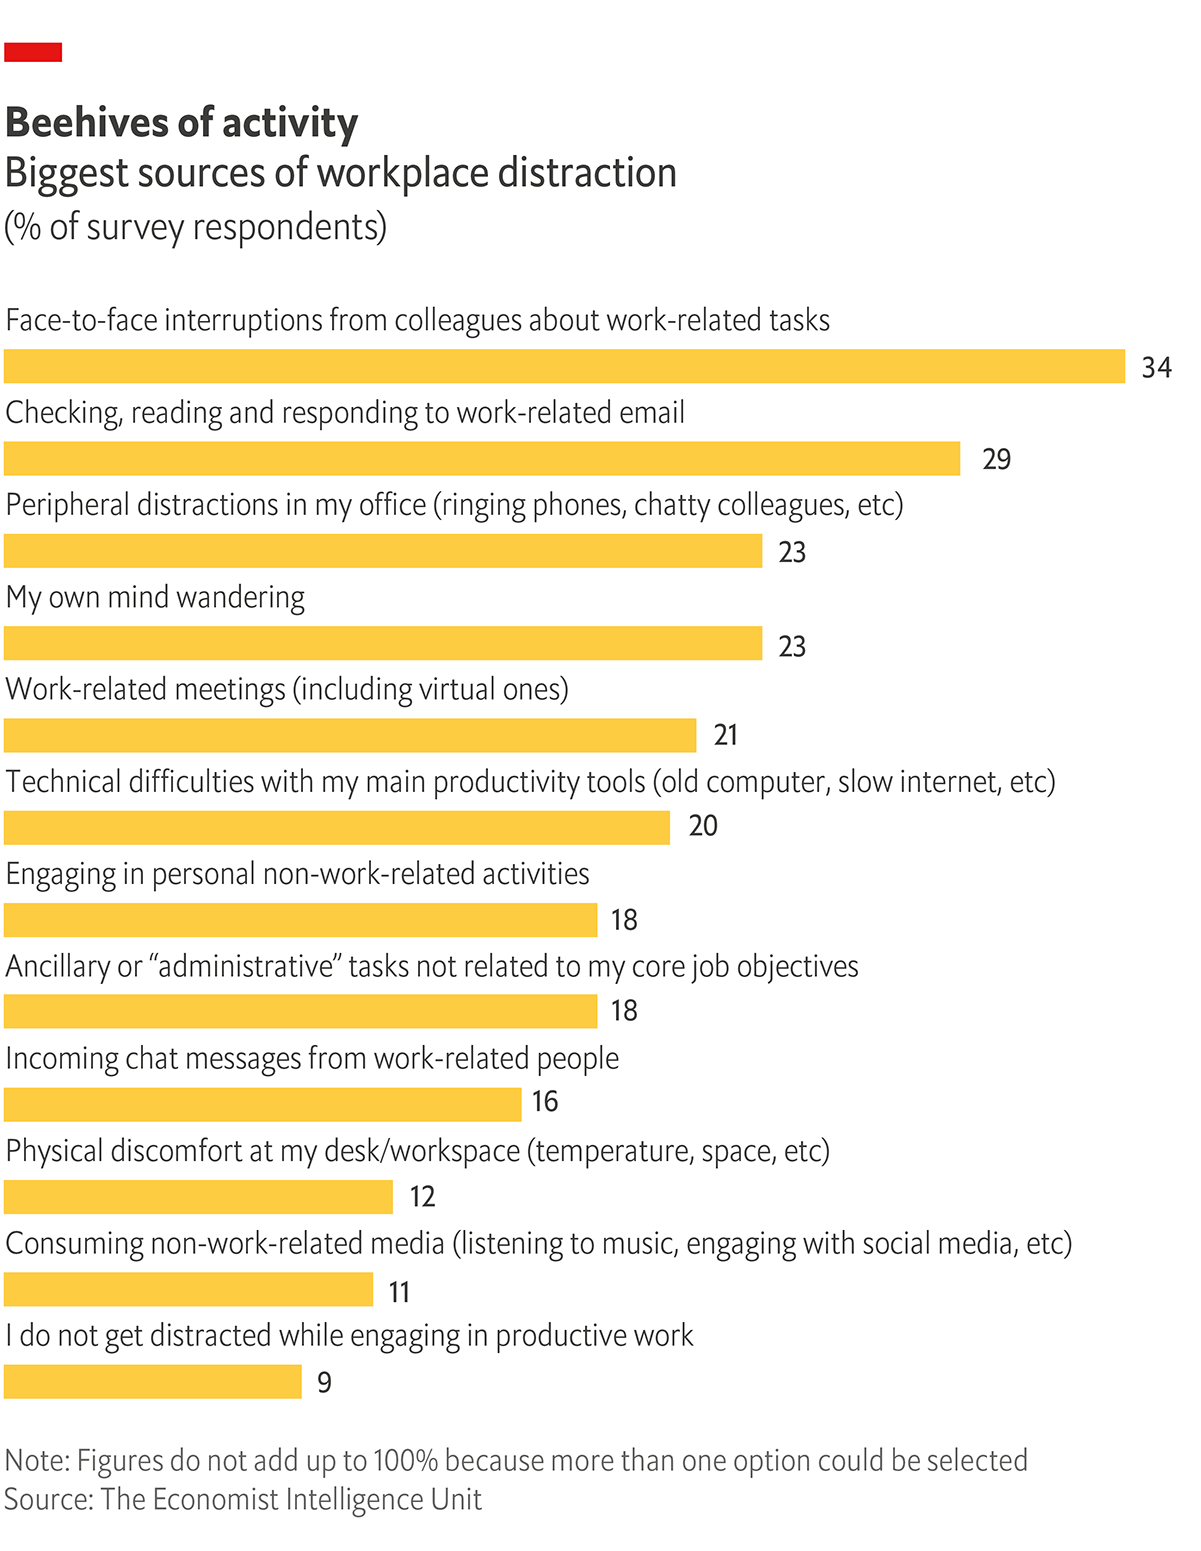 Graphic showing biggest sources of workplace distraction? (% of survey respondents)